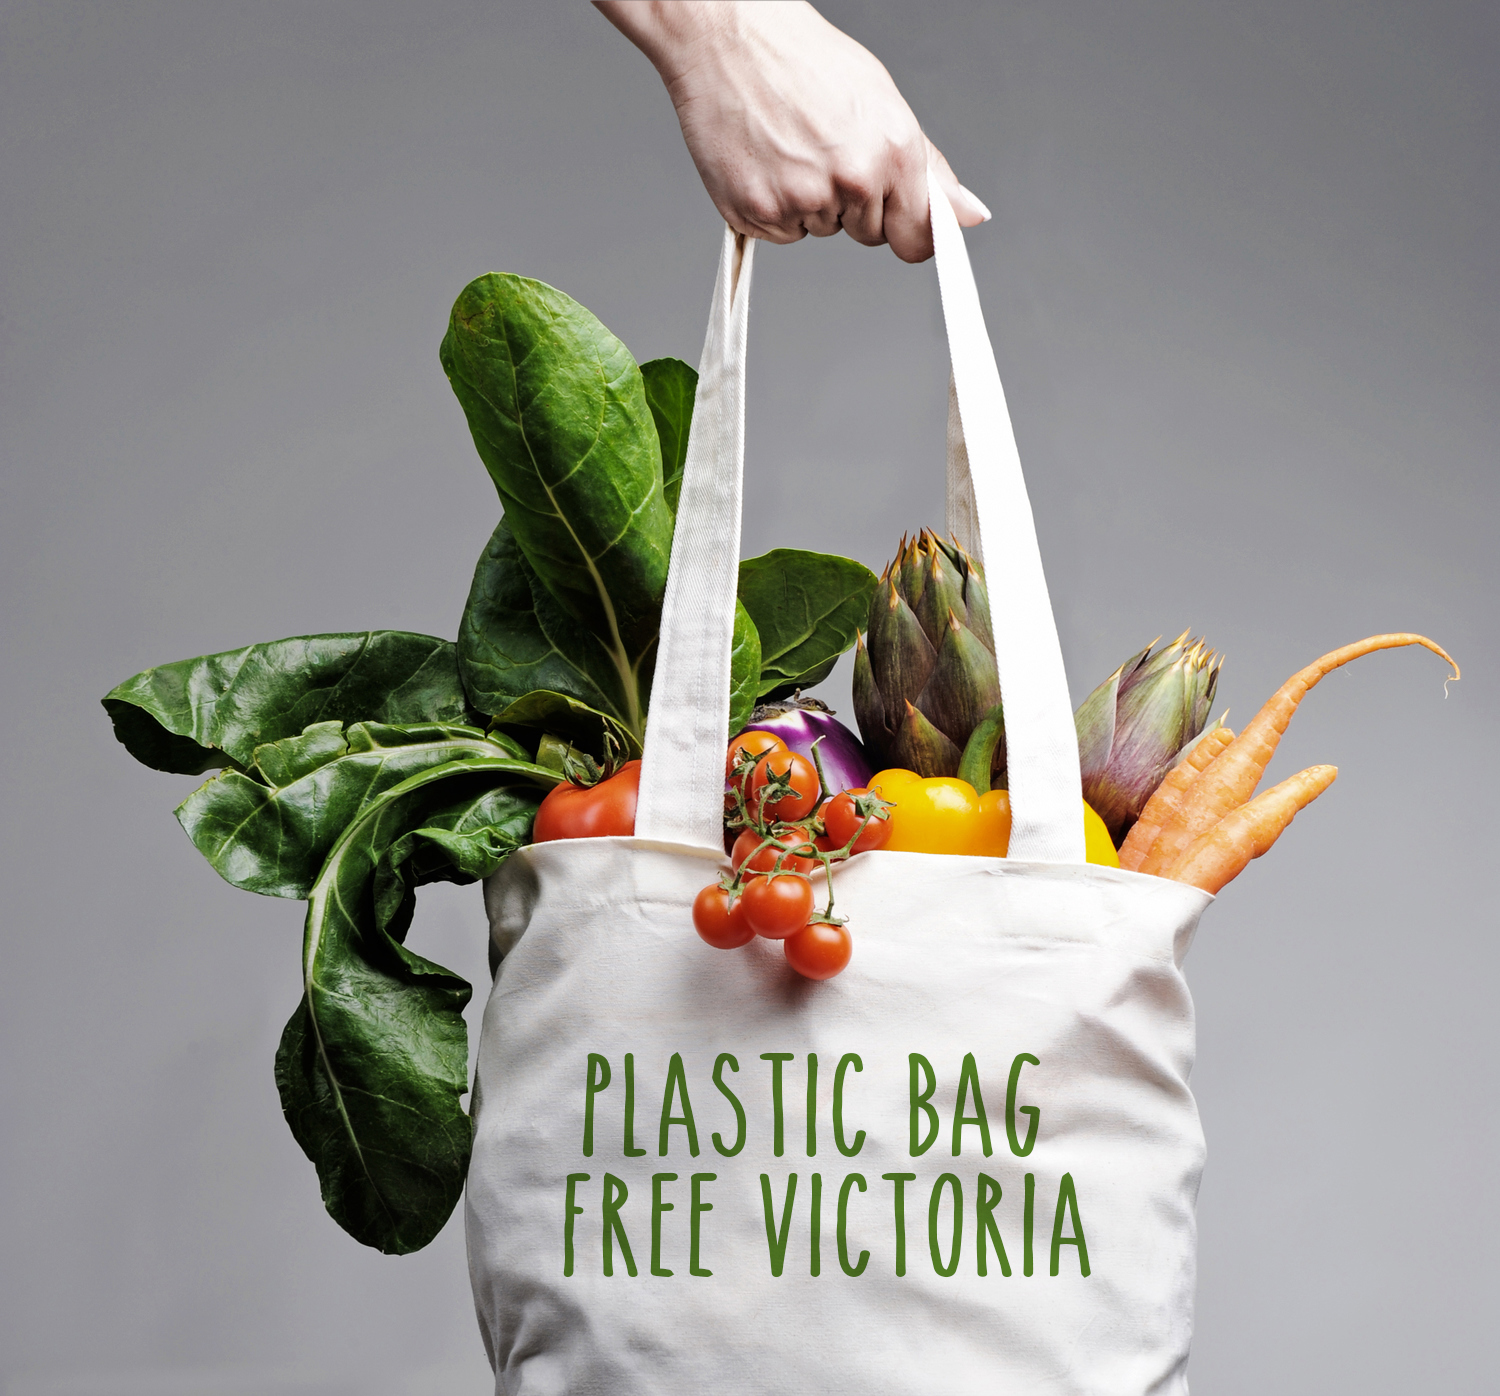 Plastic Bag Free Victoria - my foray into activism part 1